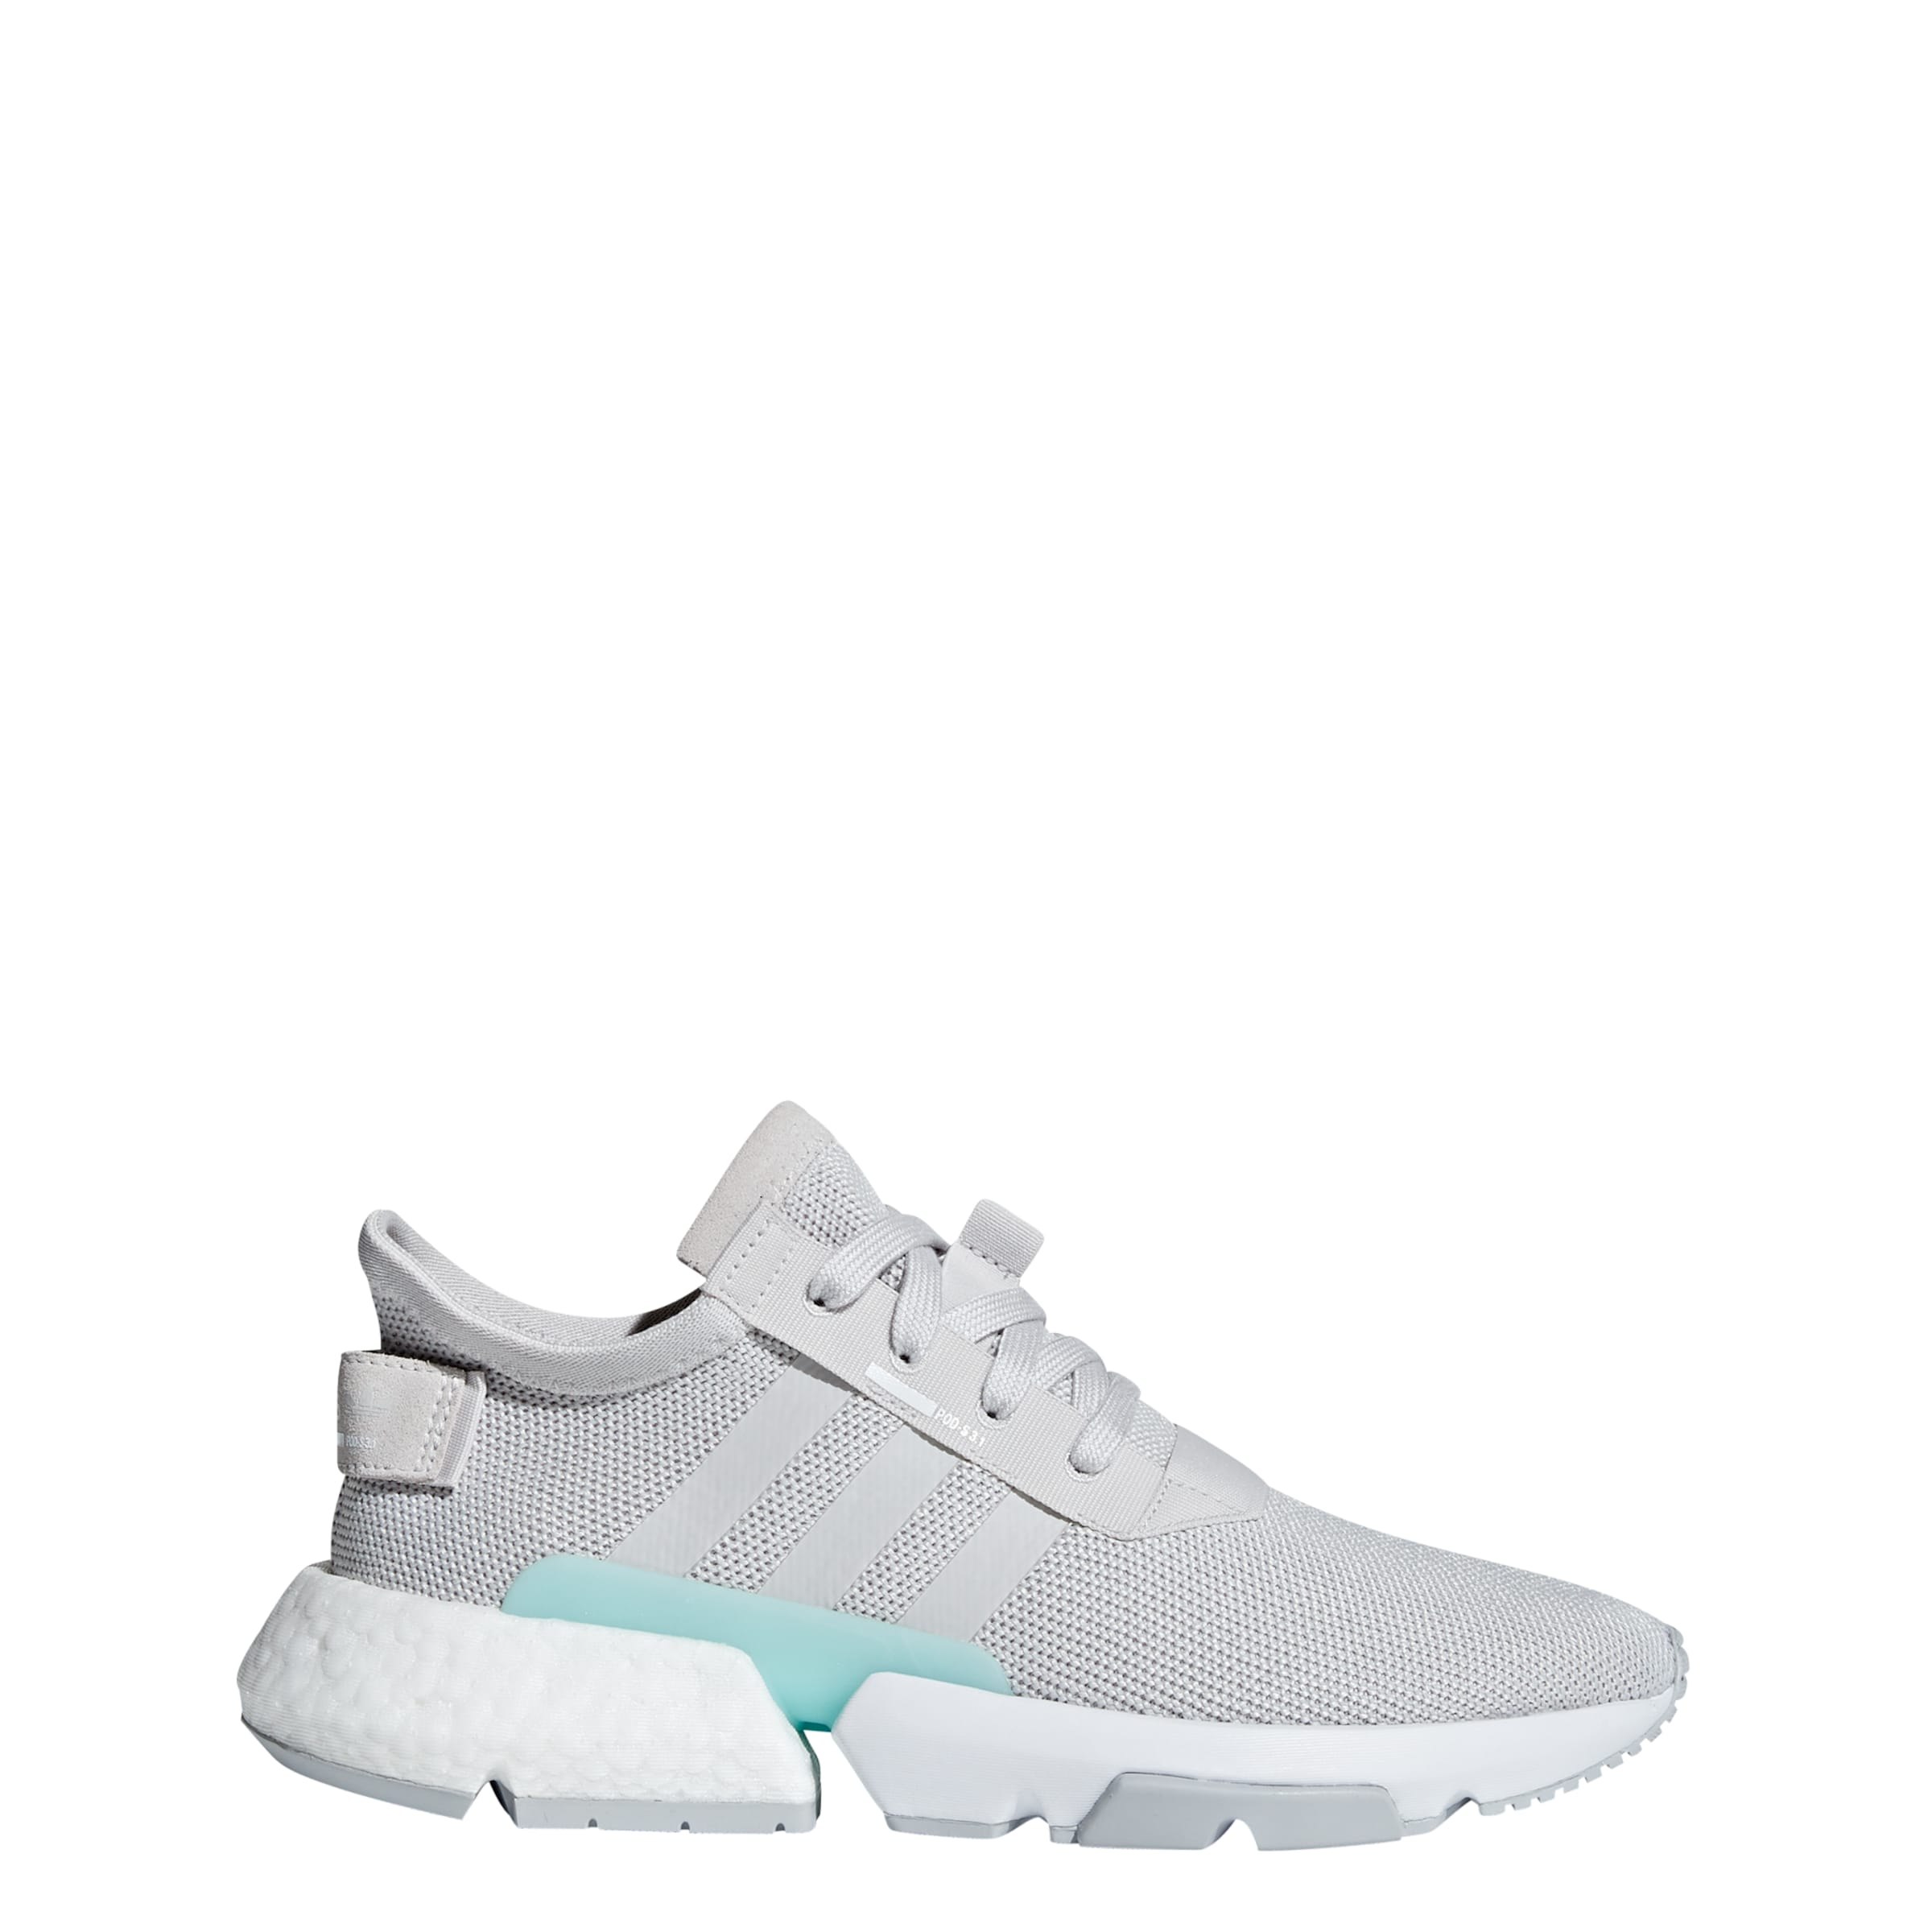 W' 'pod 1 TurquoiseGris Originals s3 Baskets Adidas En Basses nm8Nwv0